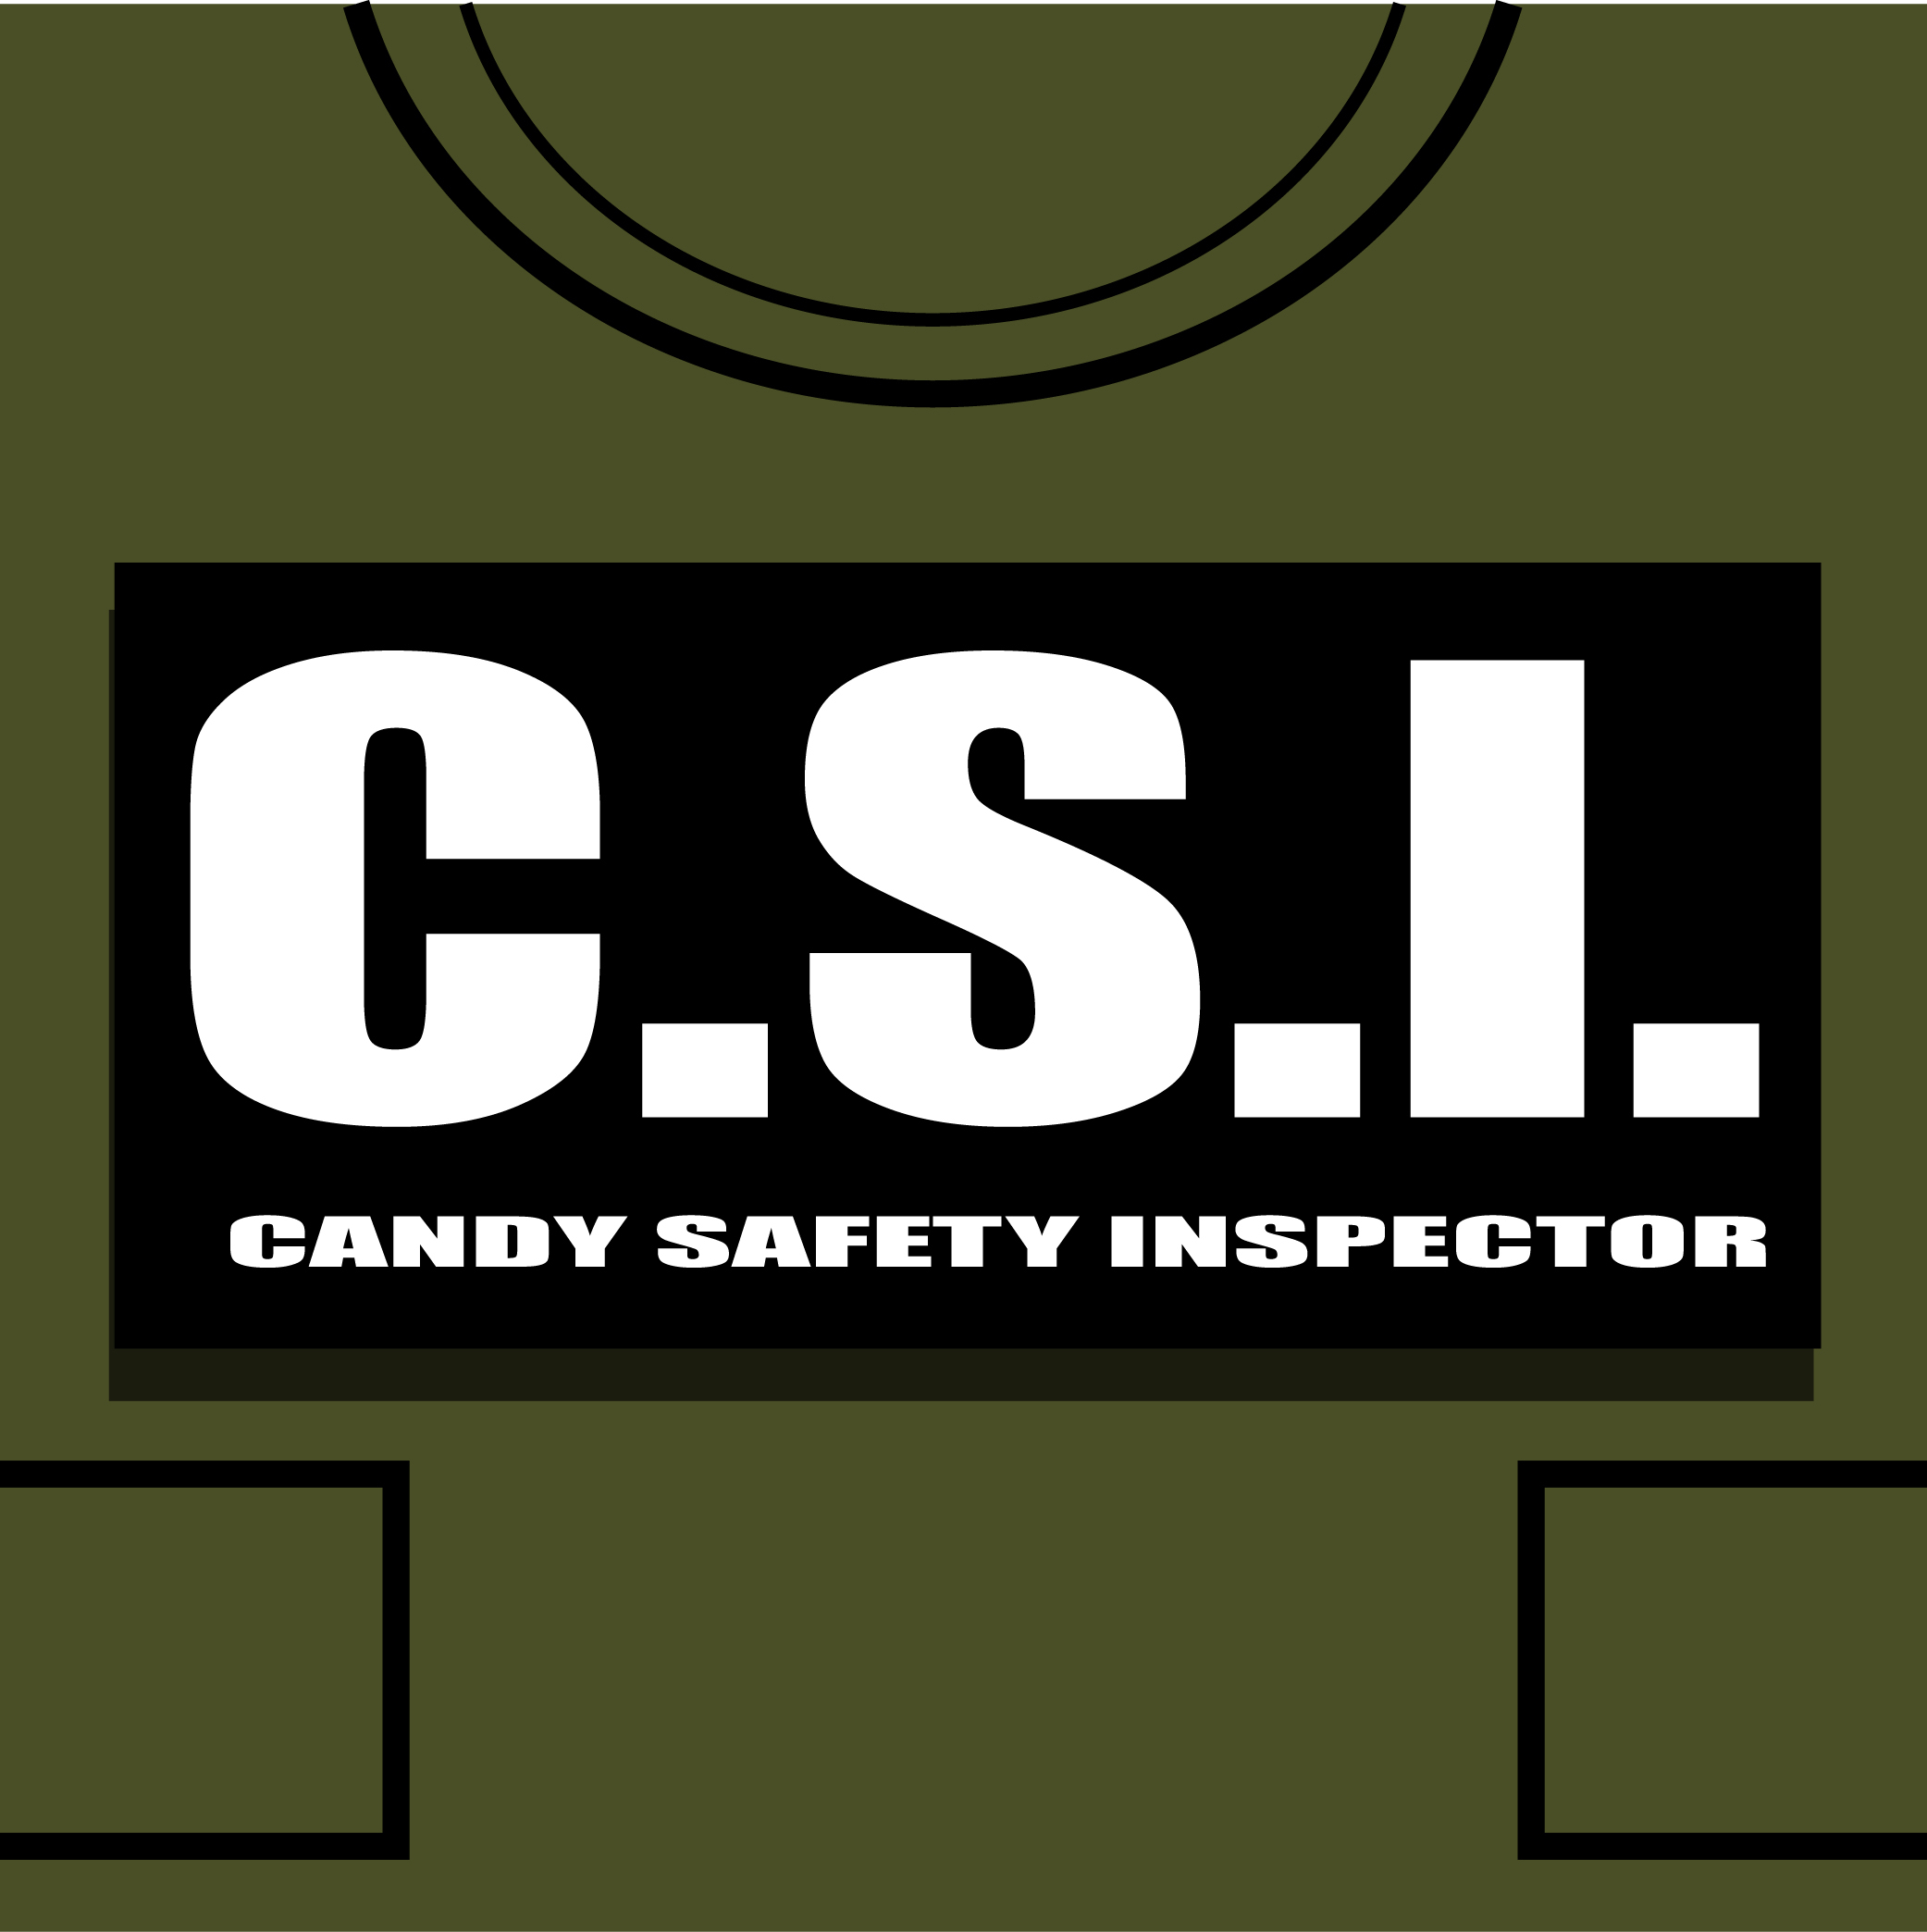 CSI Candy Safety Inspector